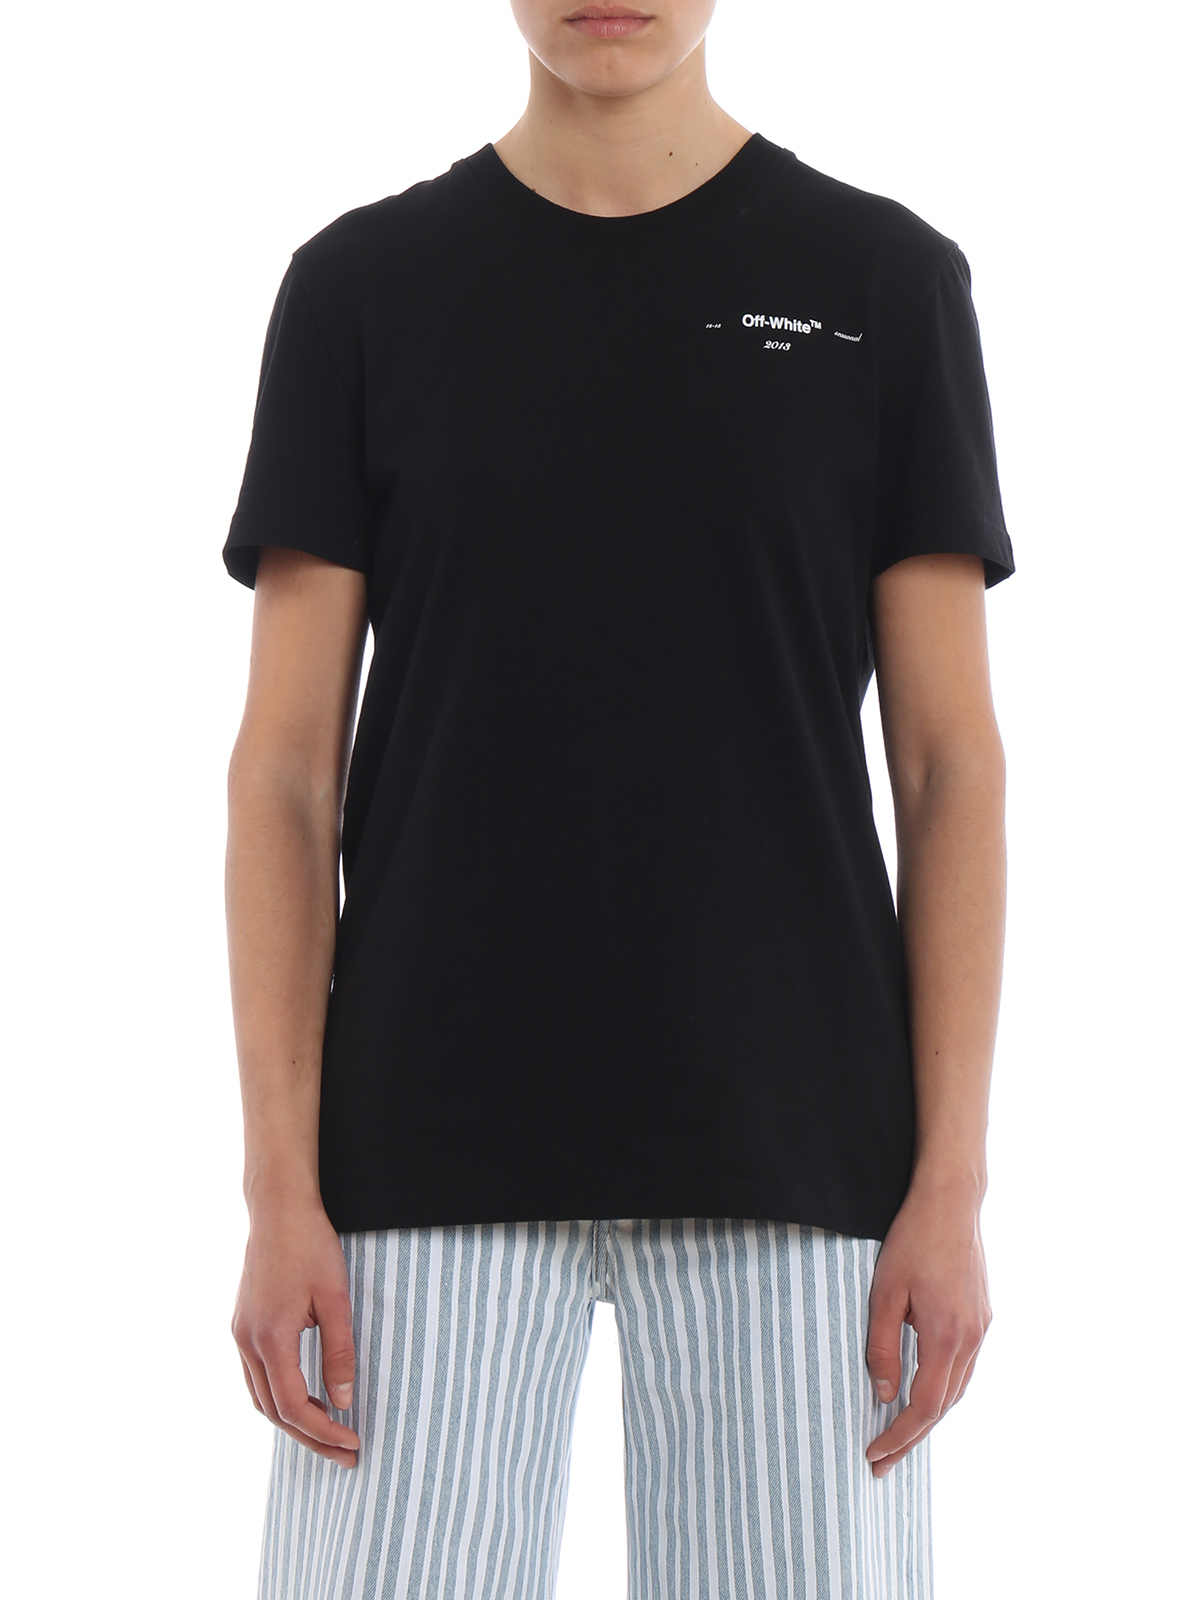 off white t shirt schwarz t shirts owaa049r19b070441010. Black Bedroom Furniture Sets. Home Design Ideas